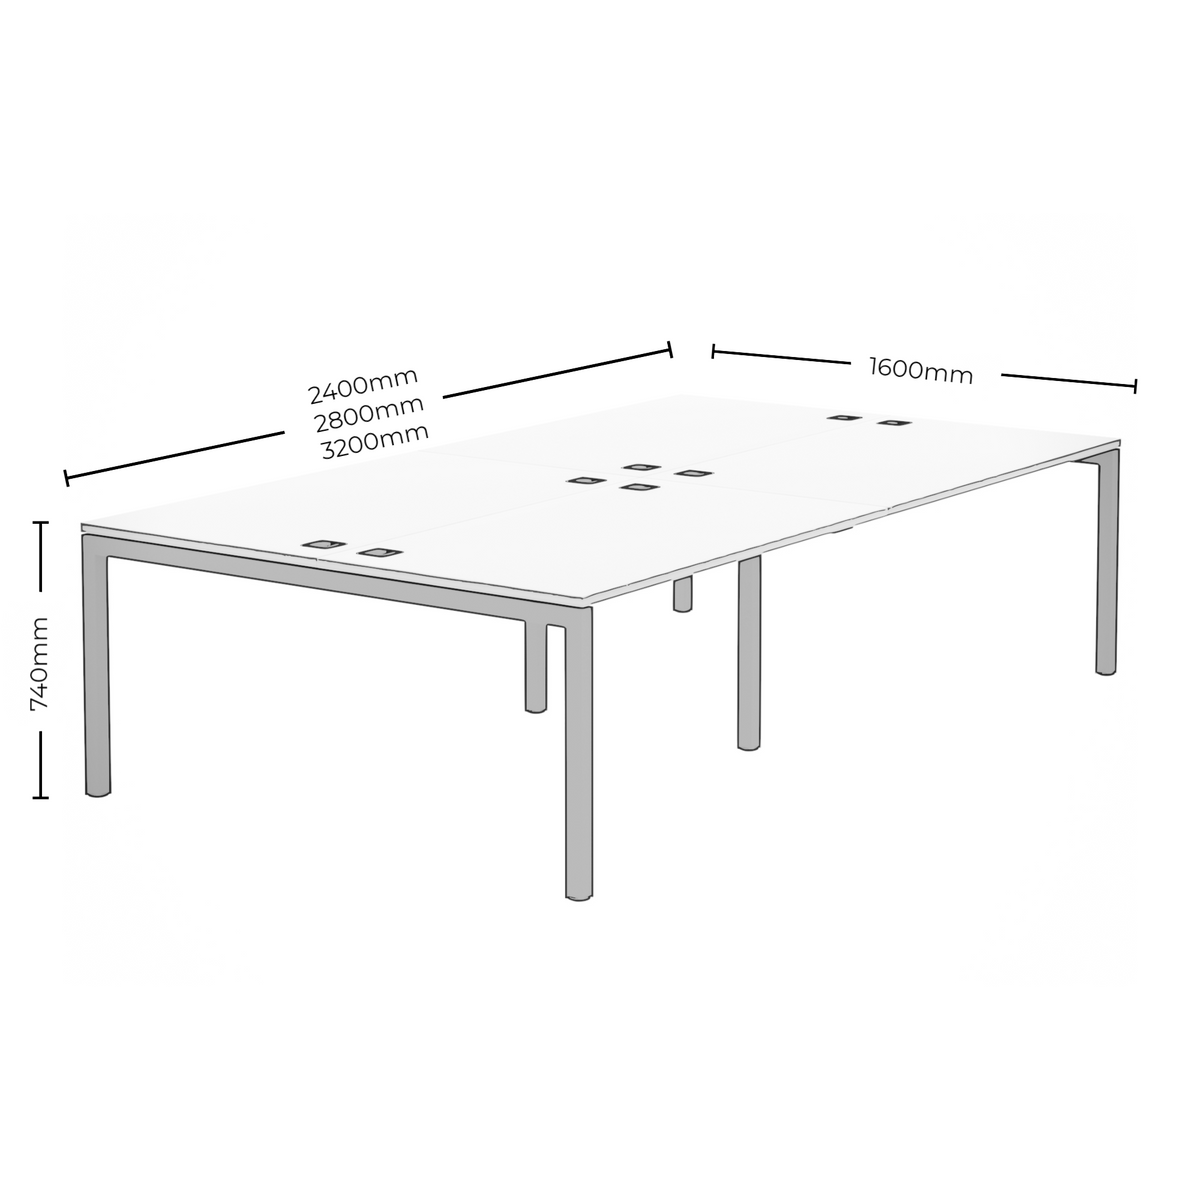 Dimensions for Elite Office Matrix Desk Bank of Four